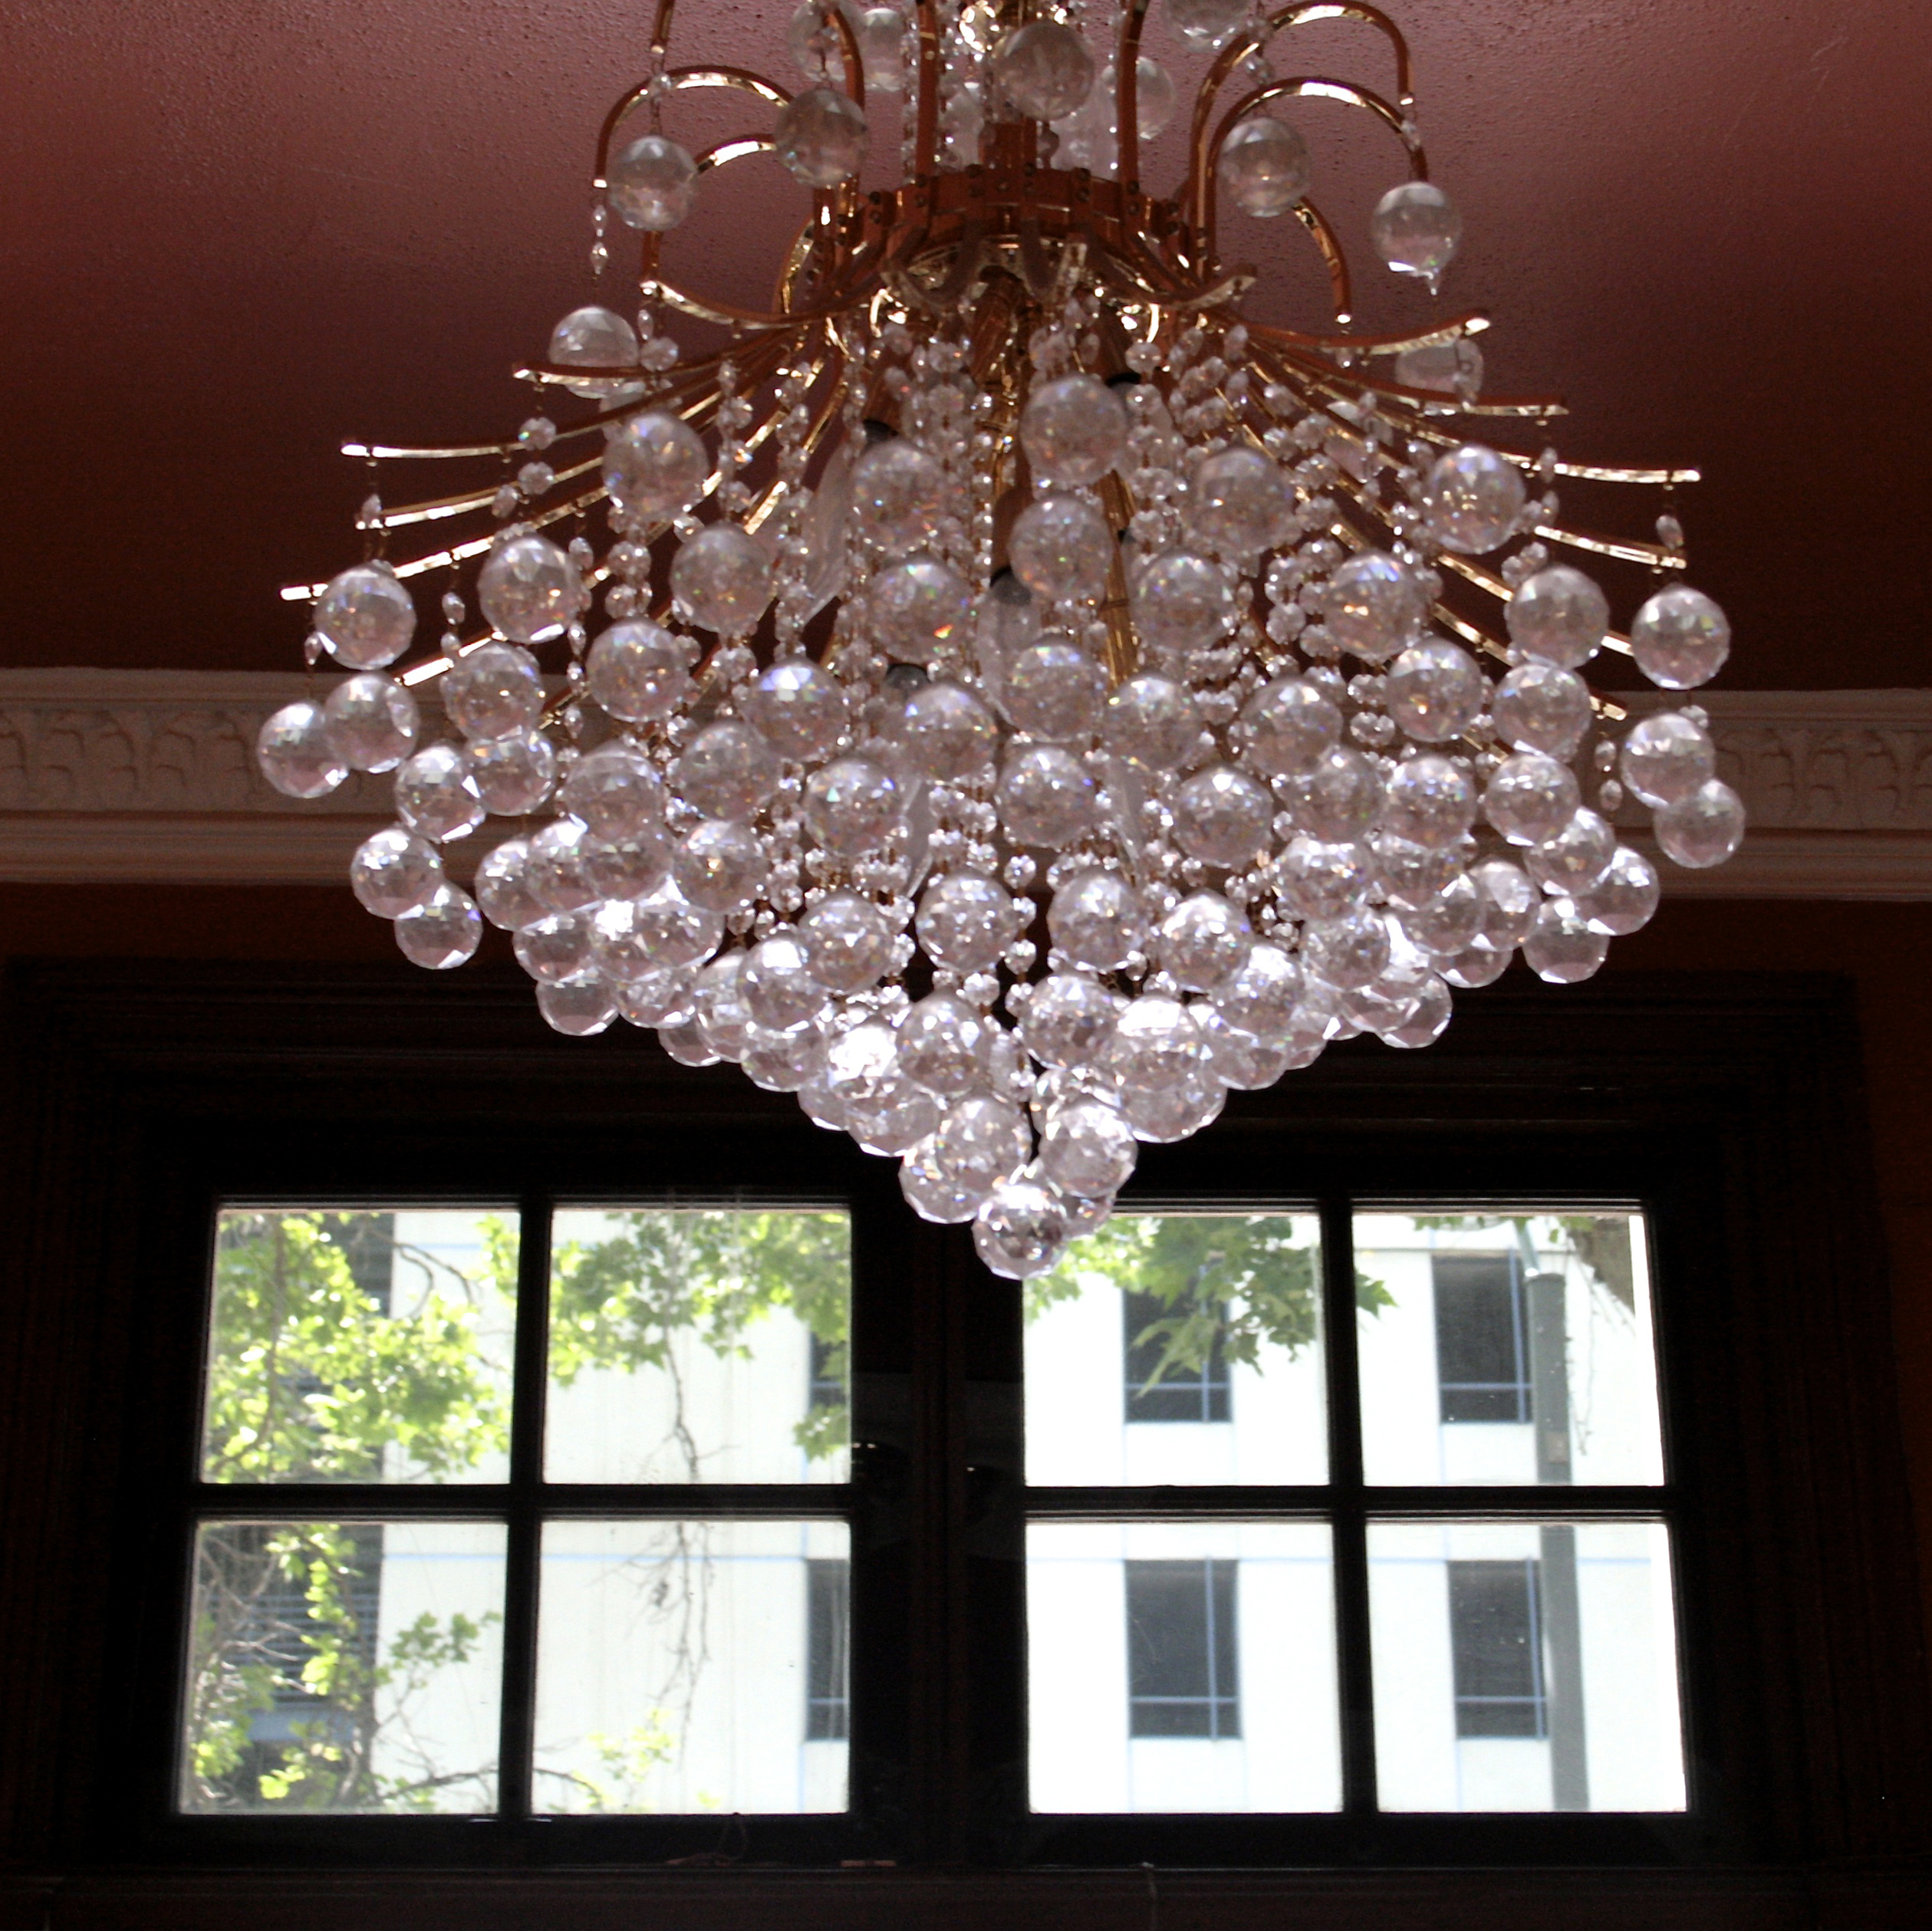 Foyer Chandelier, Le Petit Trianon Theater Marie Cameron 2015